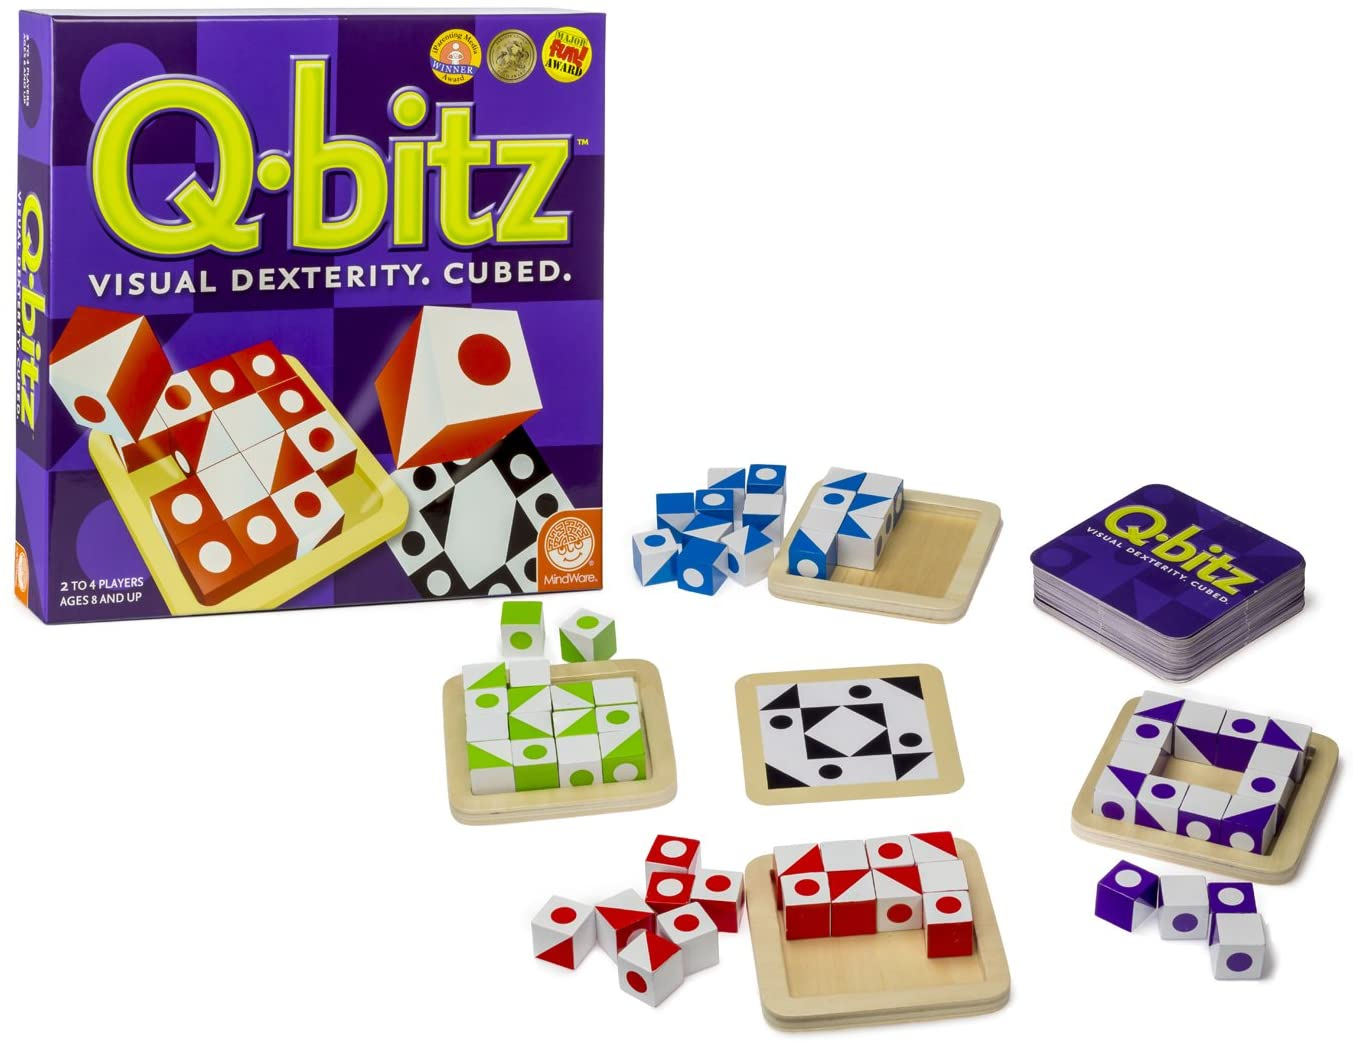 Qbitz holiday gift guide for learning games